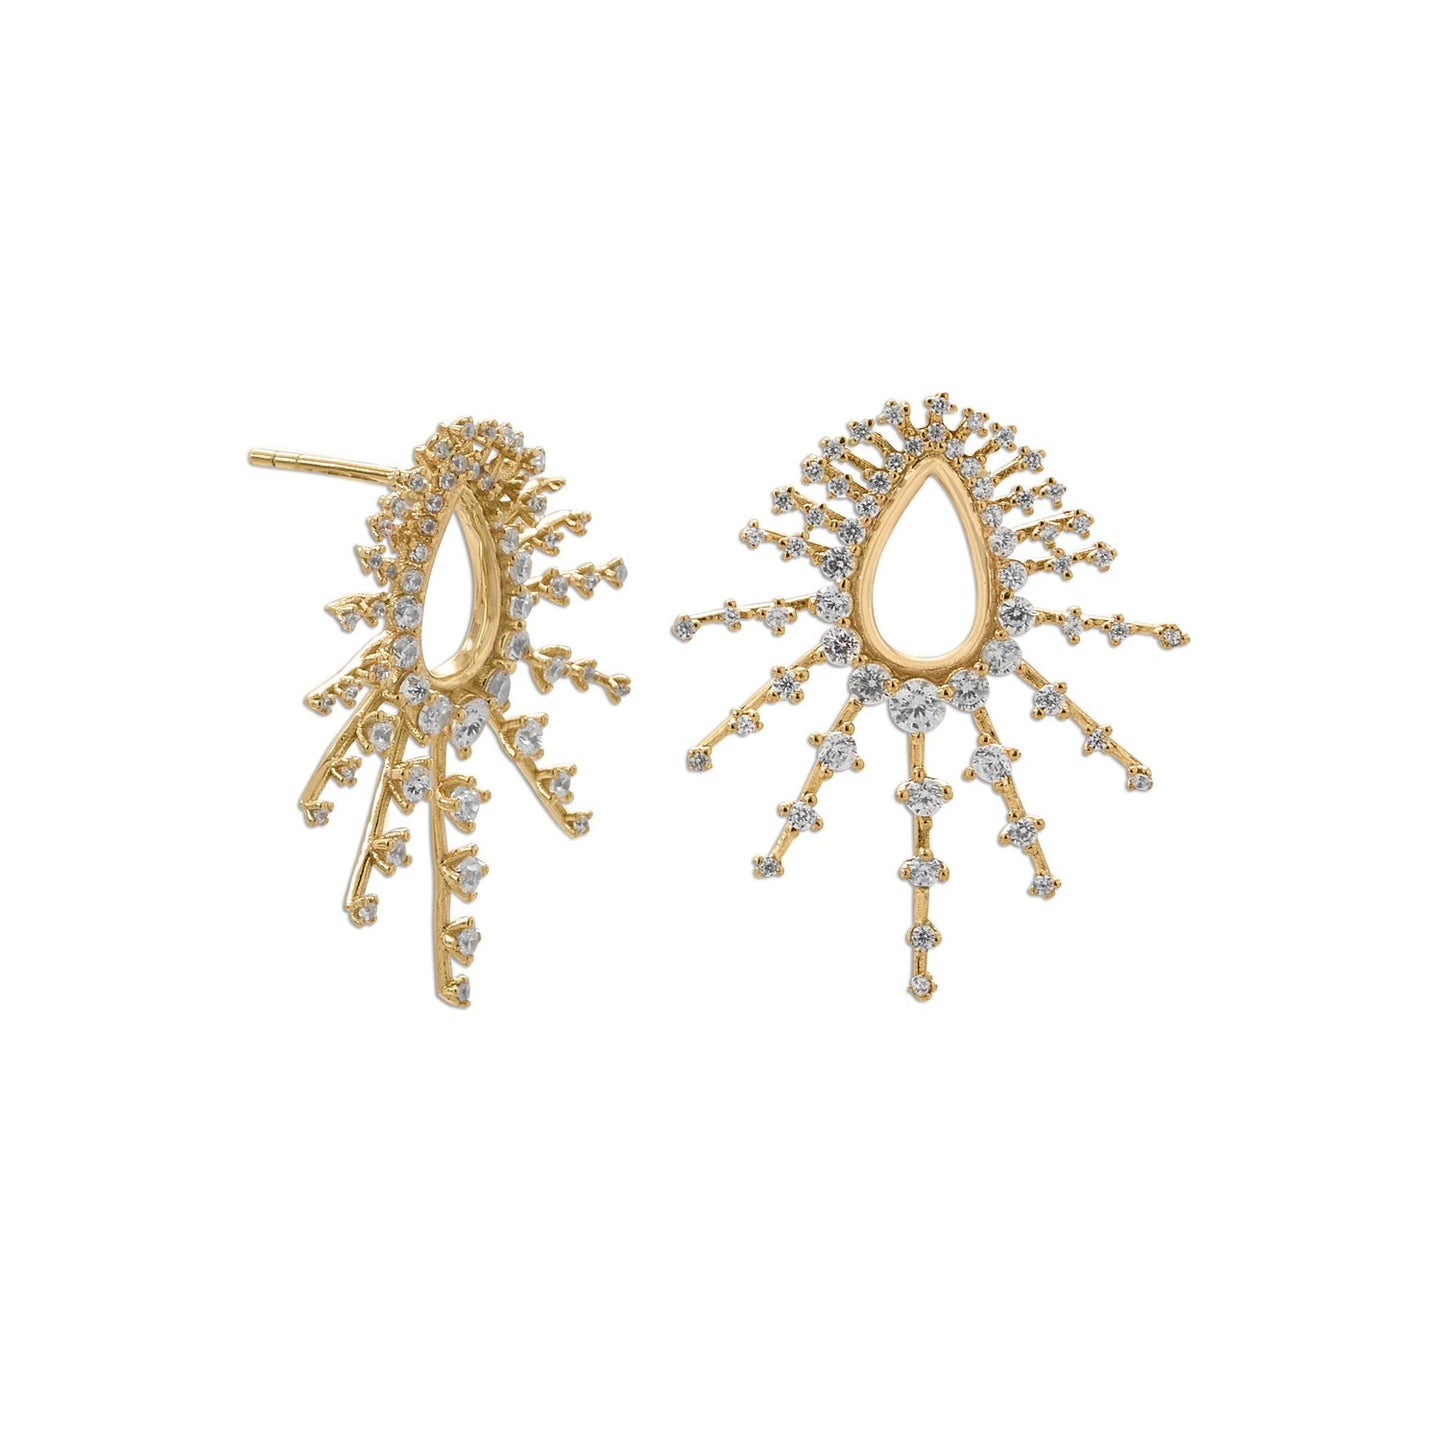 14 Karat Gold Plated Bursting CZ Post Earrings at 3 Barn Swallows, $95